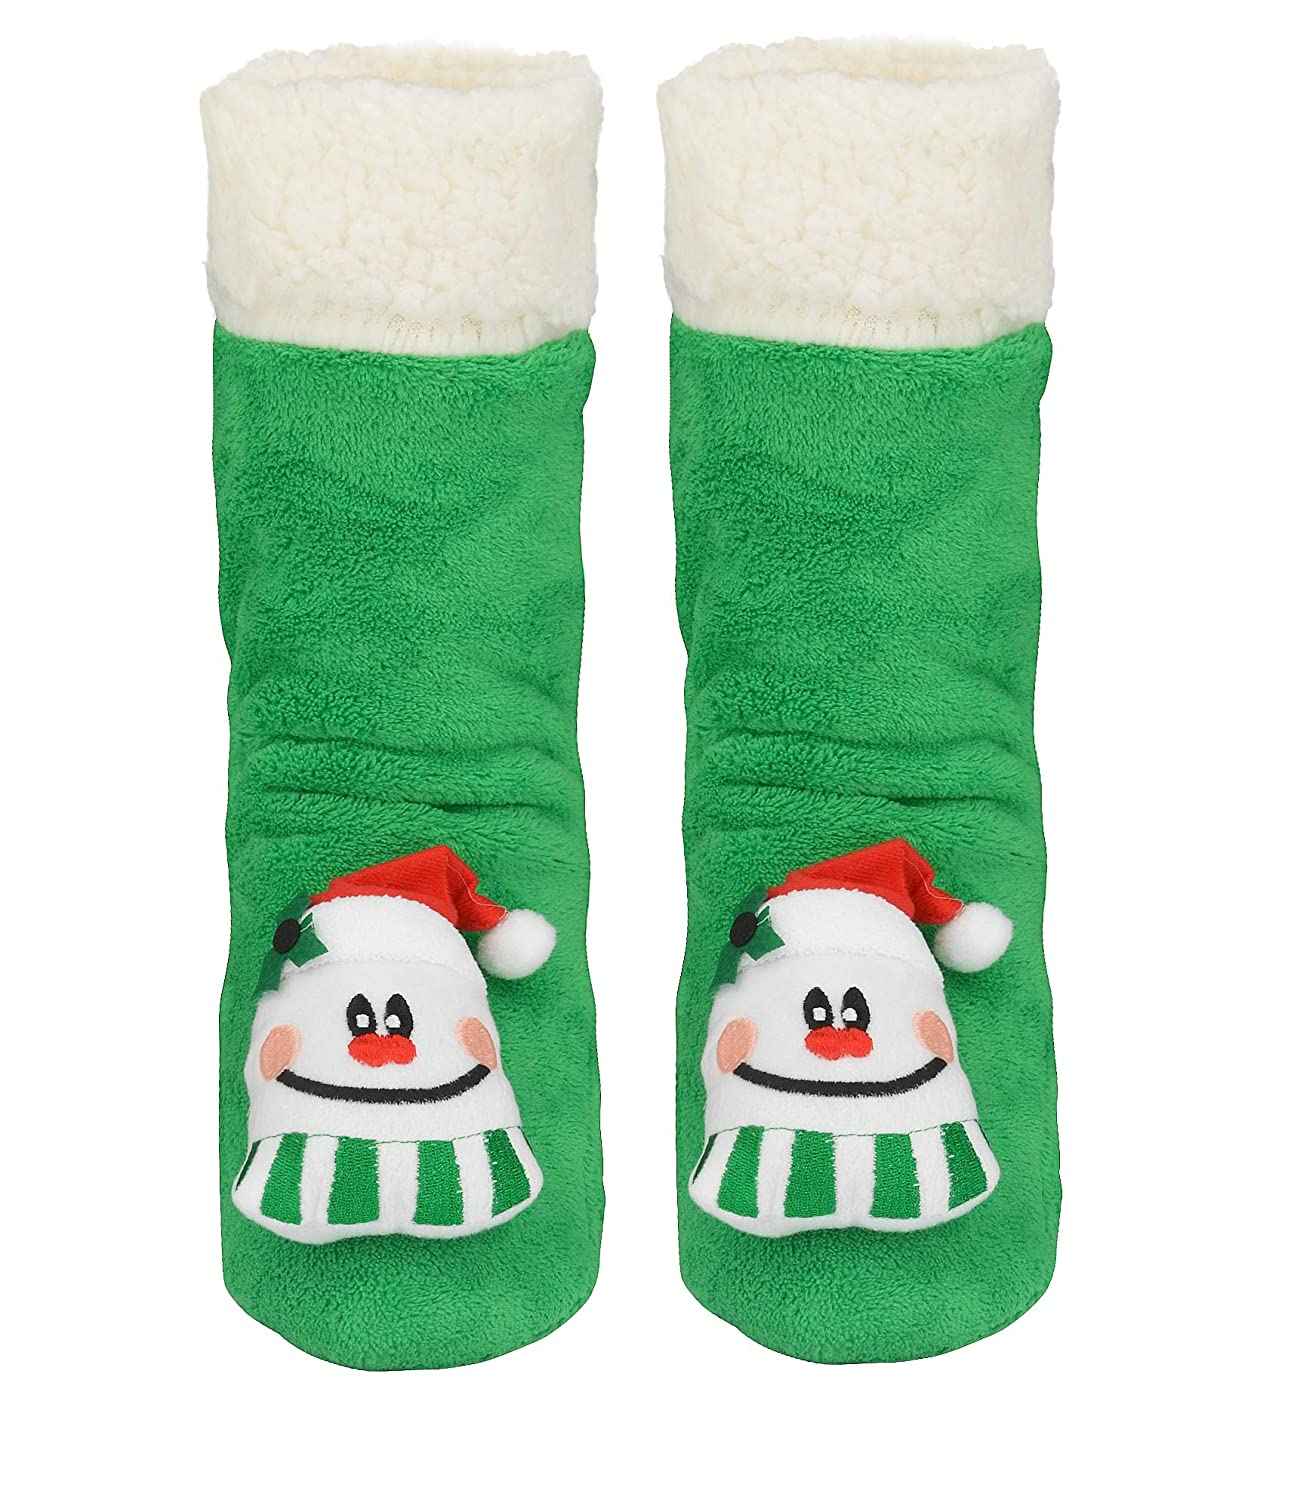 ELFJOY Womens Christmas Slipper Socks Cute Pattern Fleece Warm Winter Sock Stockings